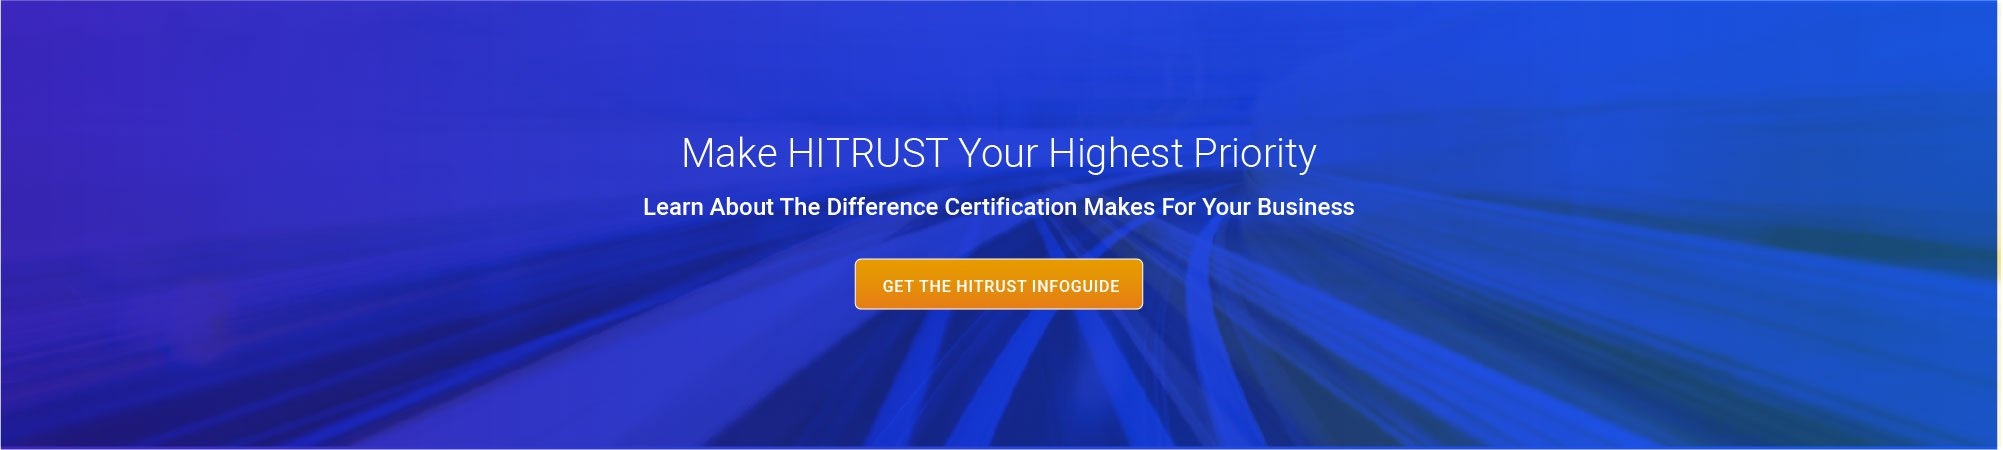 Make HITRUST Your Highest Priority